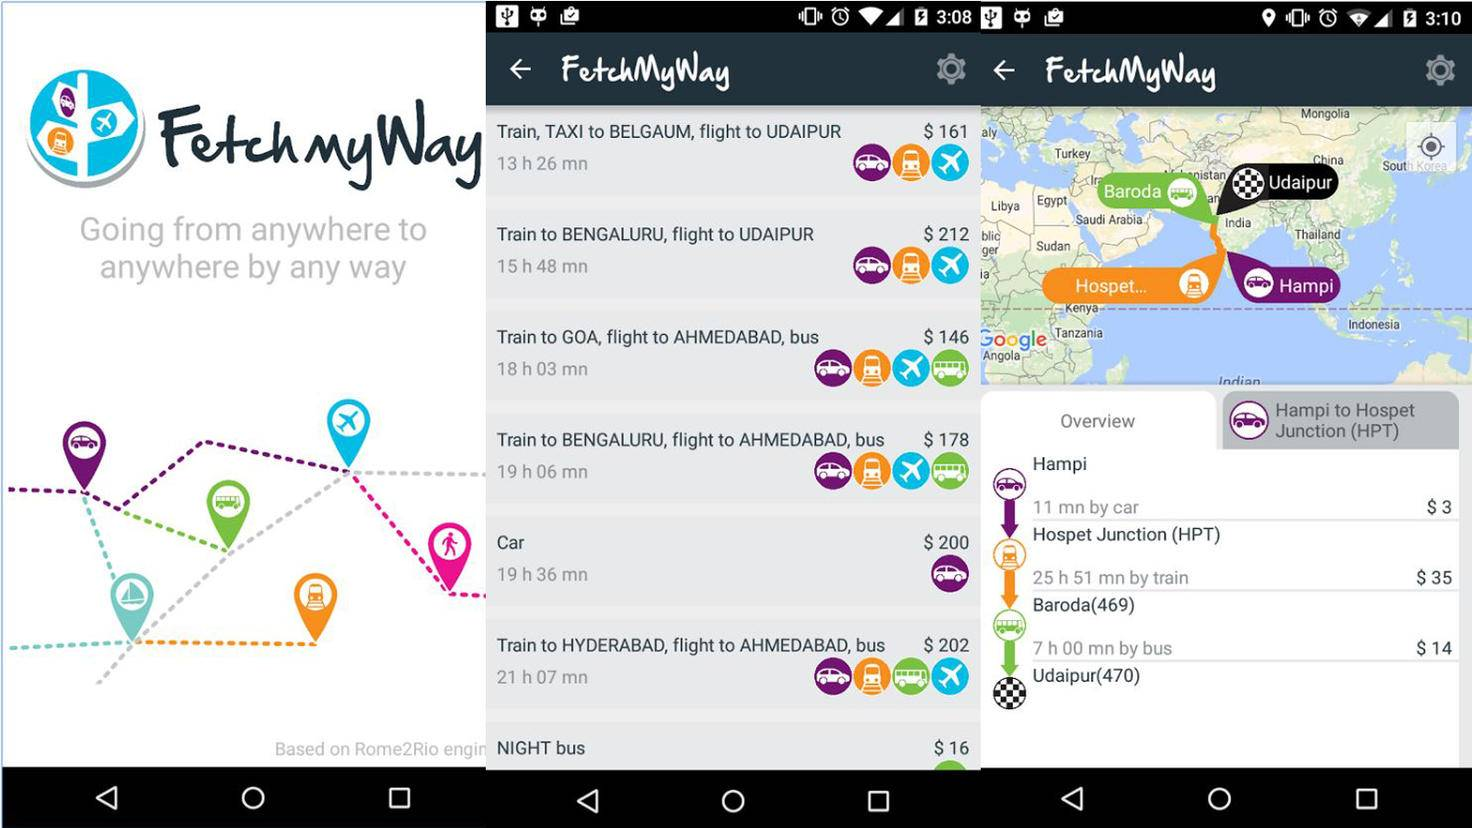 FetchMyWay-Google PlayStore-BackApp Dev